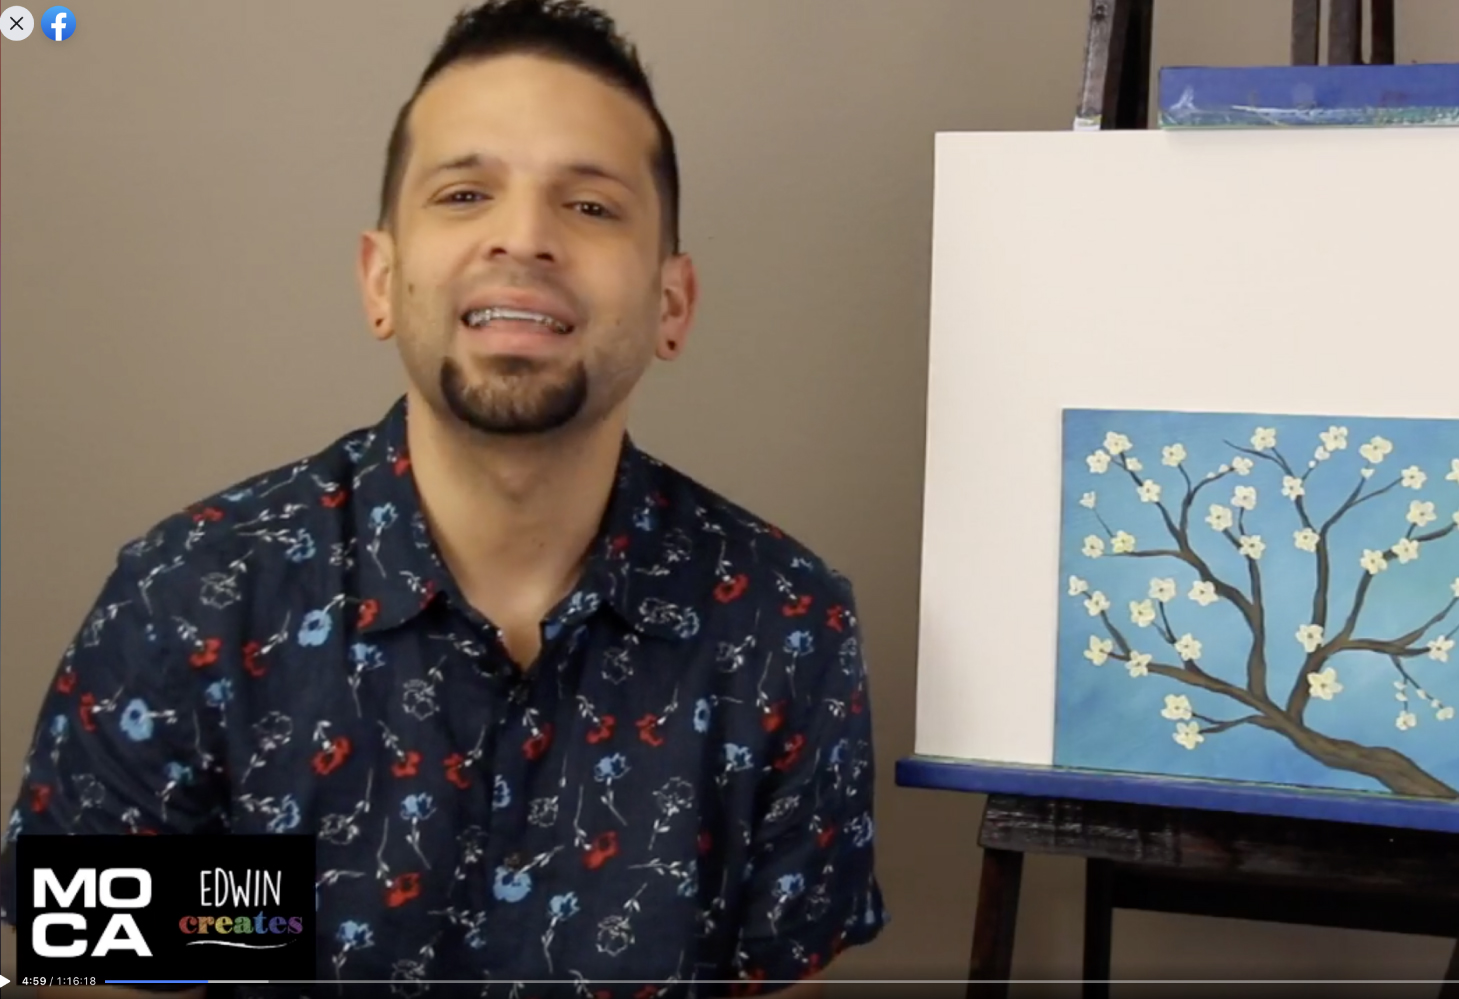 Virtual minimakers: let's paint almond blossoms! with edwin creates